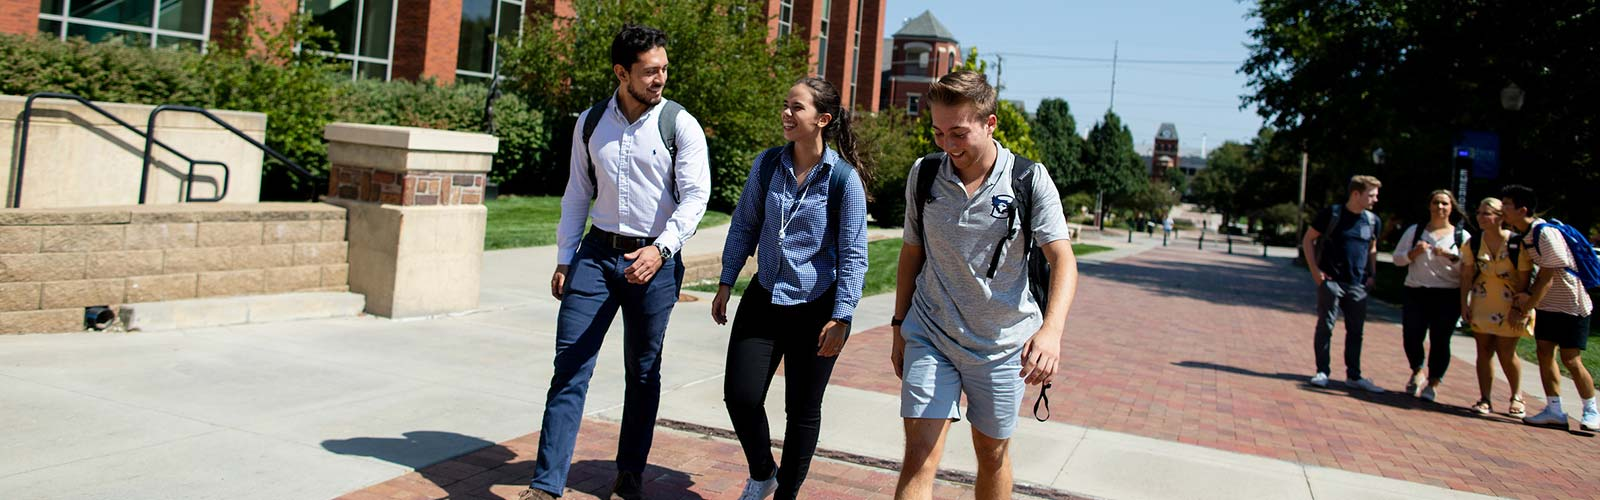 Business students walking